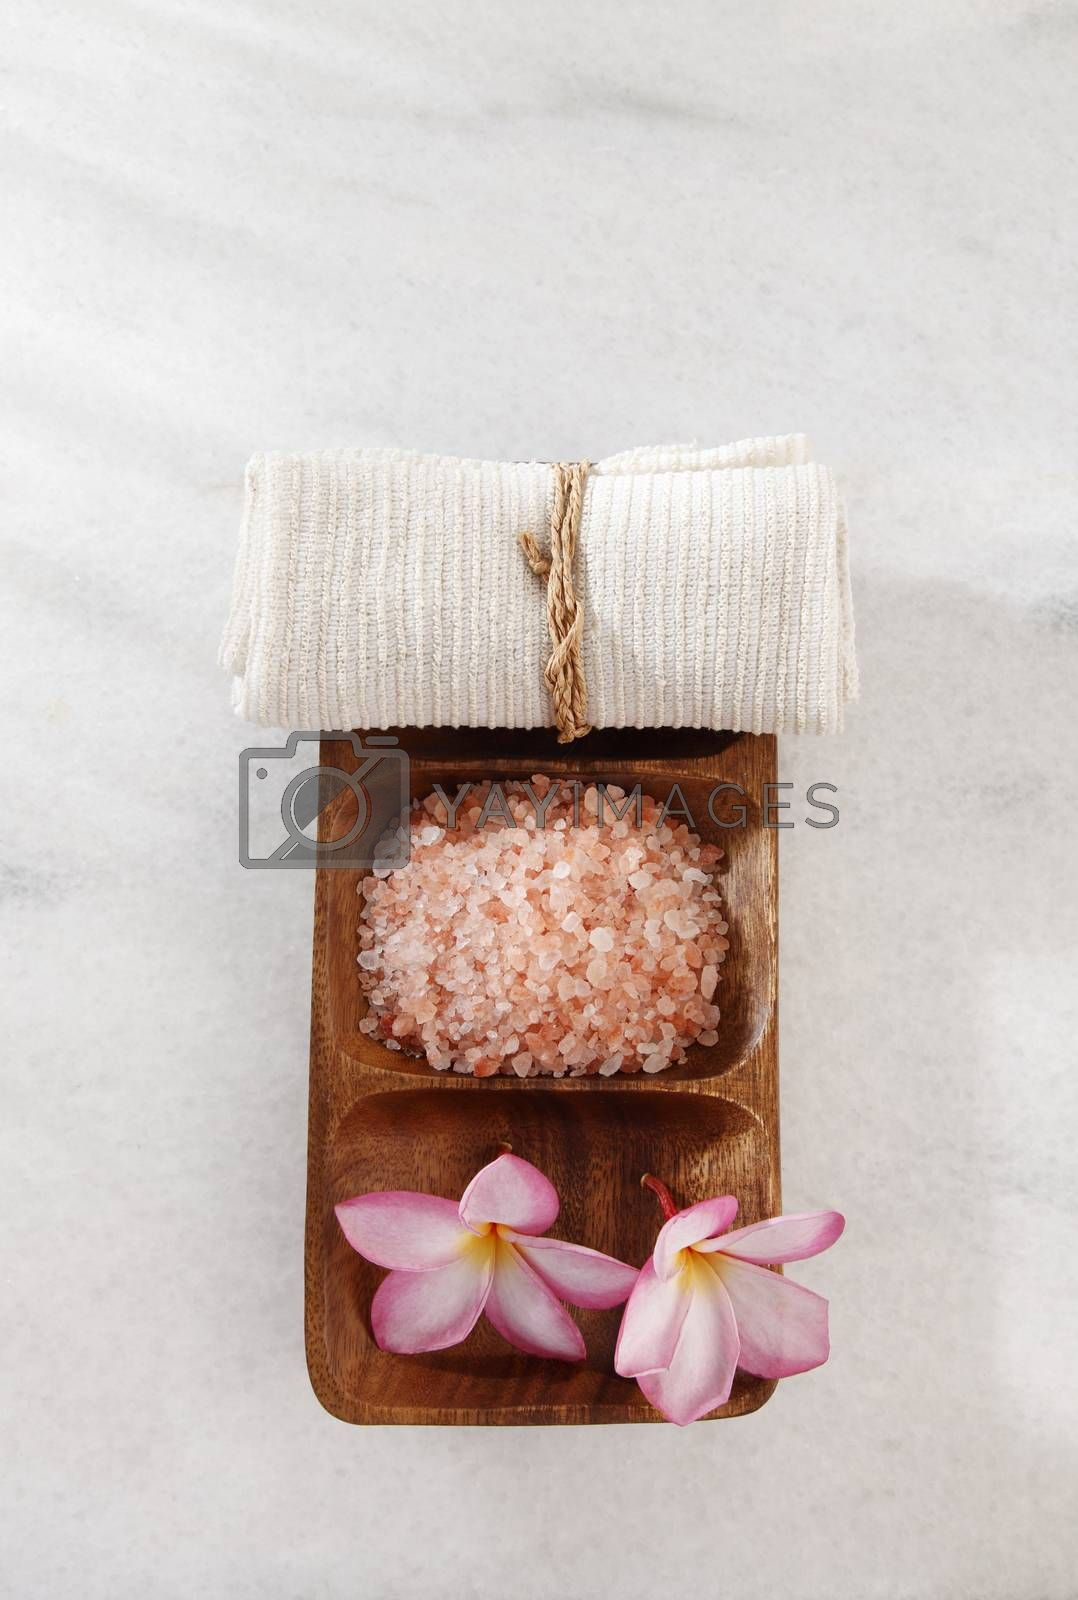 frangipani flower,salt and towel in a wooden bowl